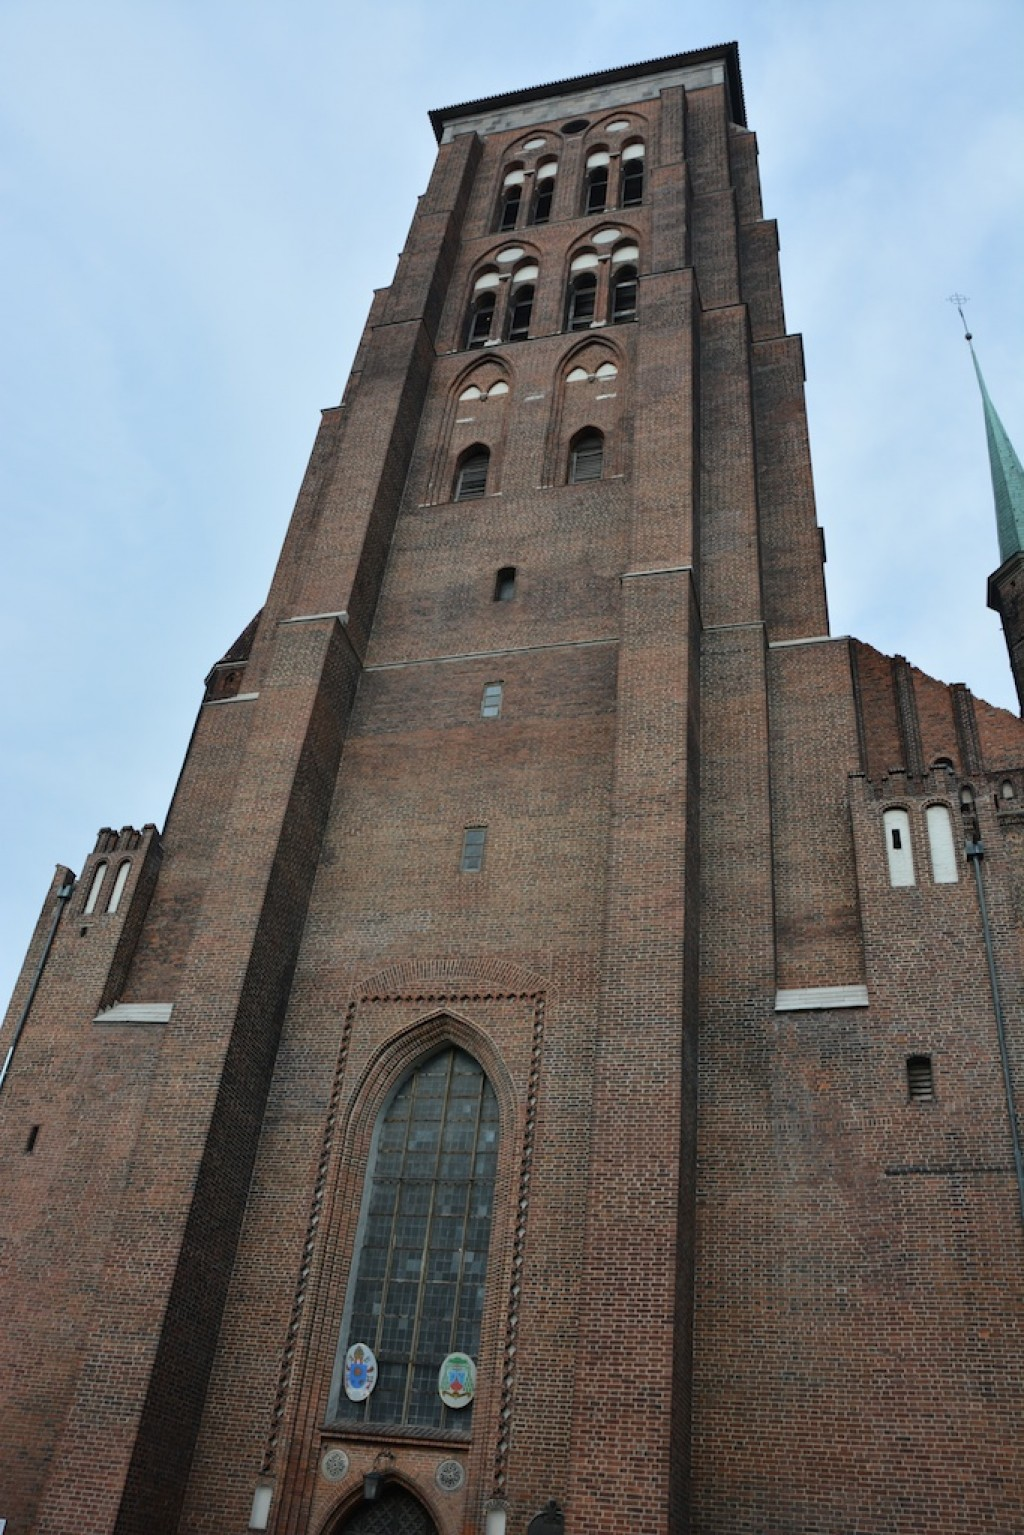 St. Mary's Church, the largest brick church in the world.